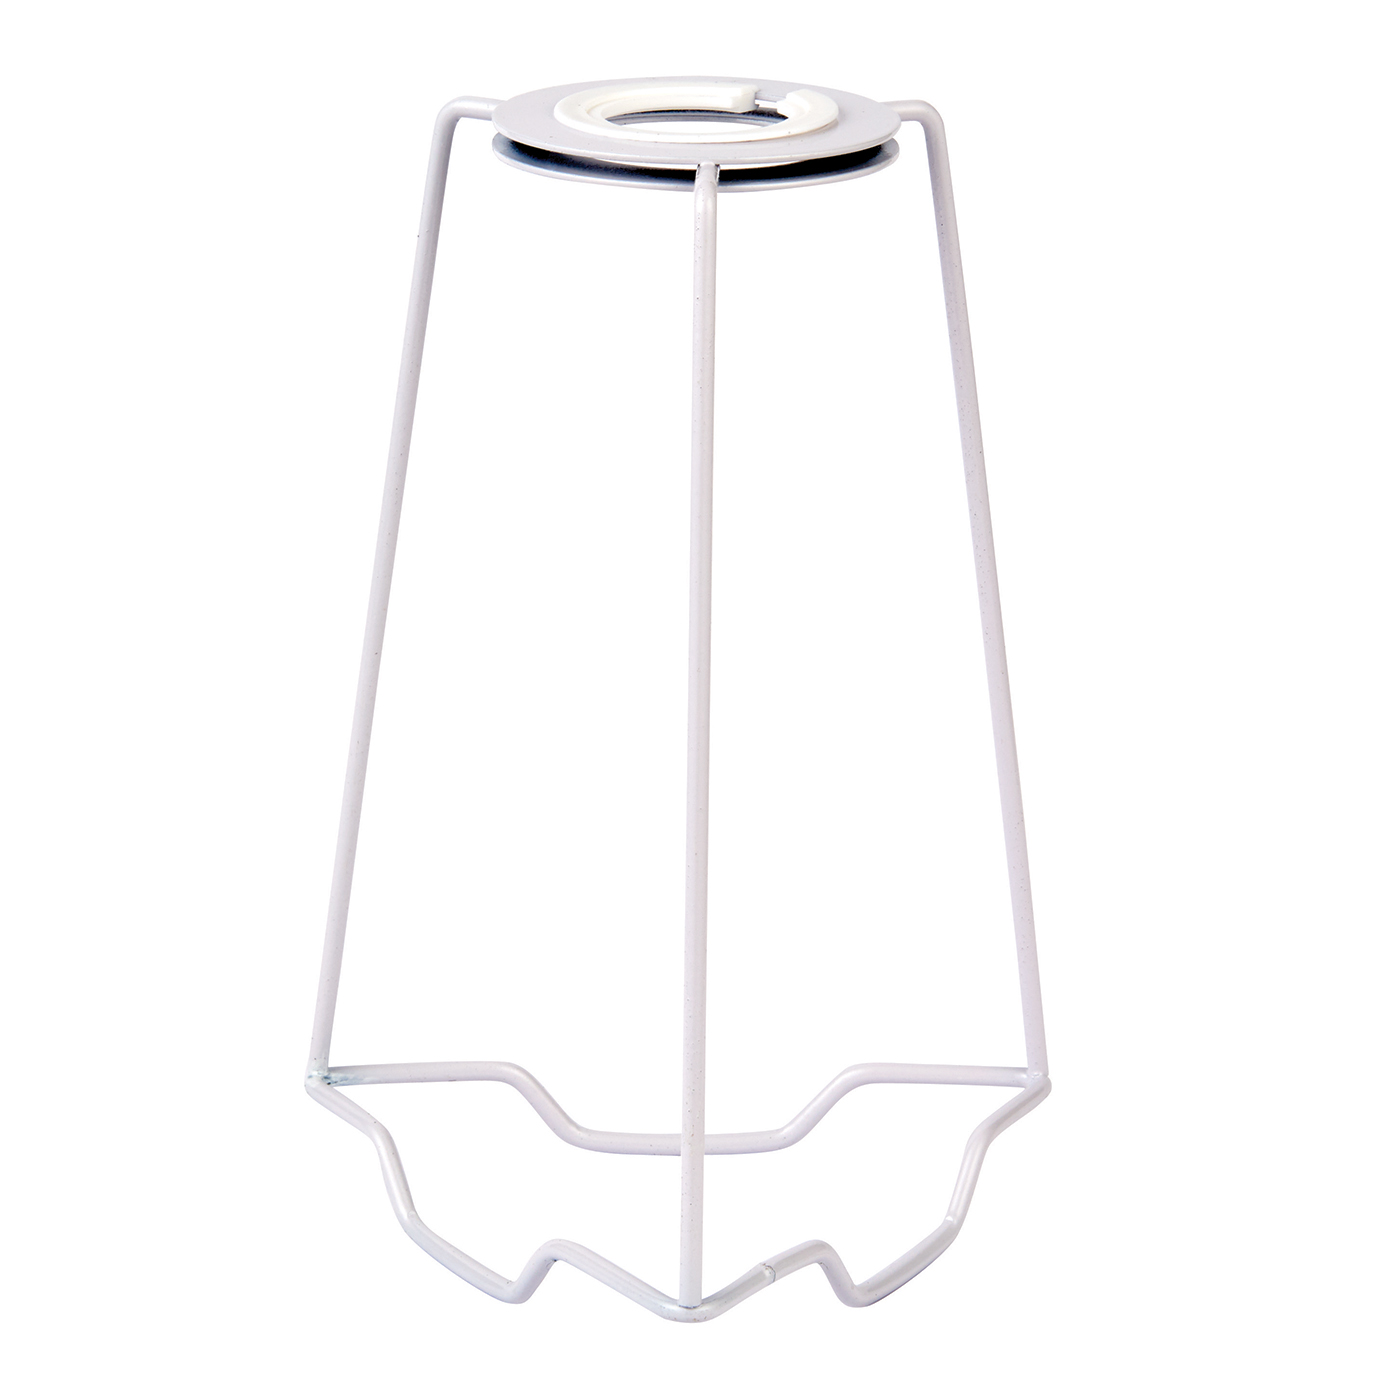 Endon SC-7 lampshade carrier 7 inch Gloss white 195mm height x 125mm diameter